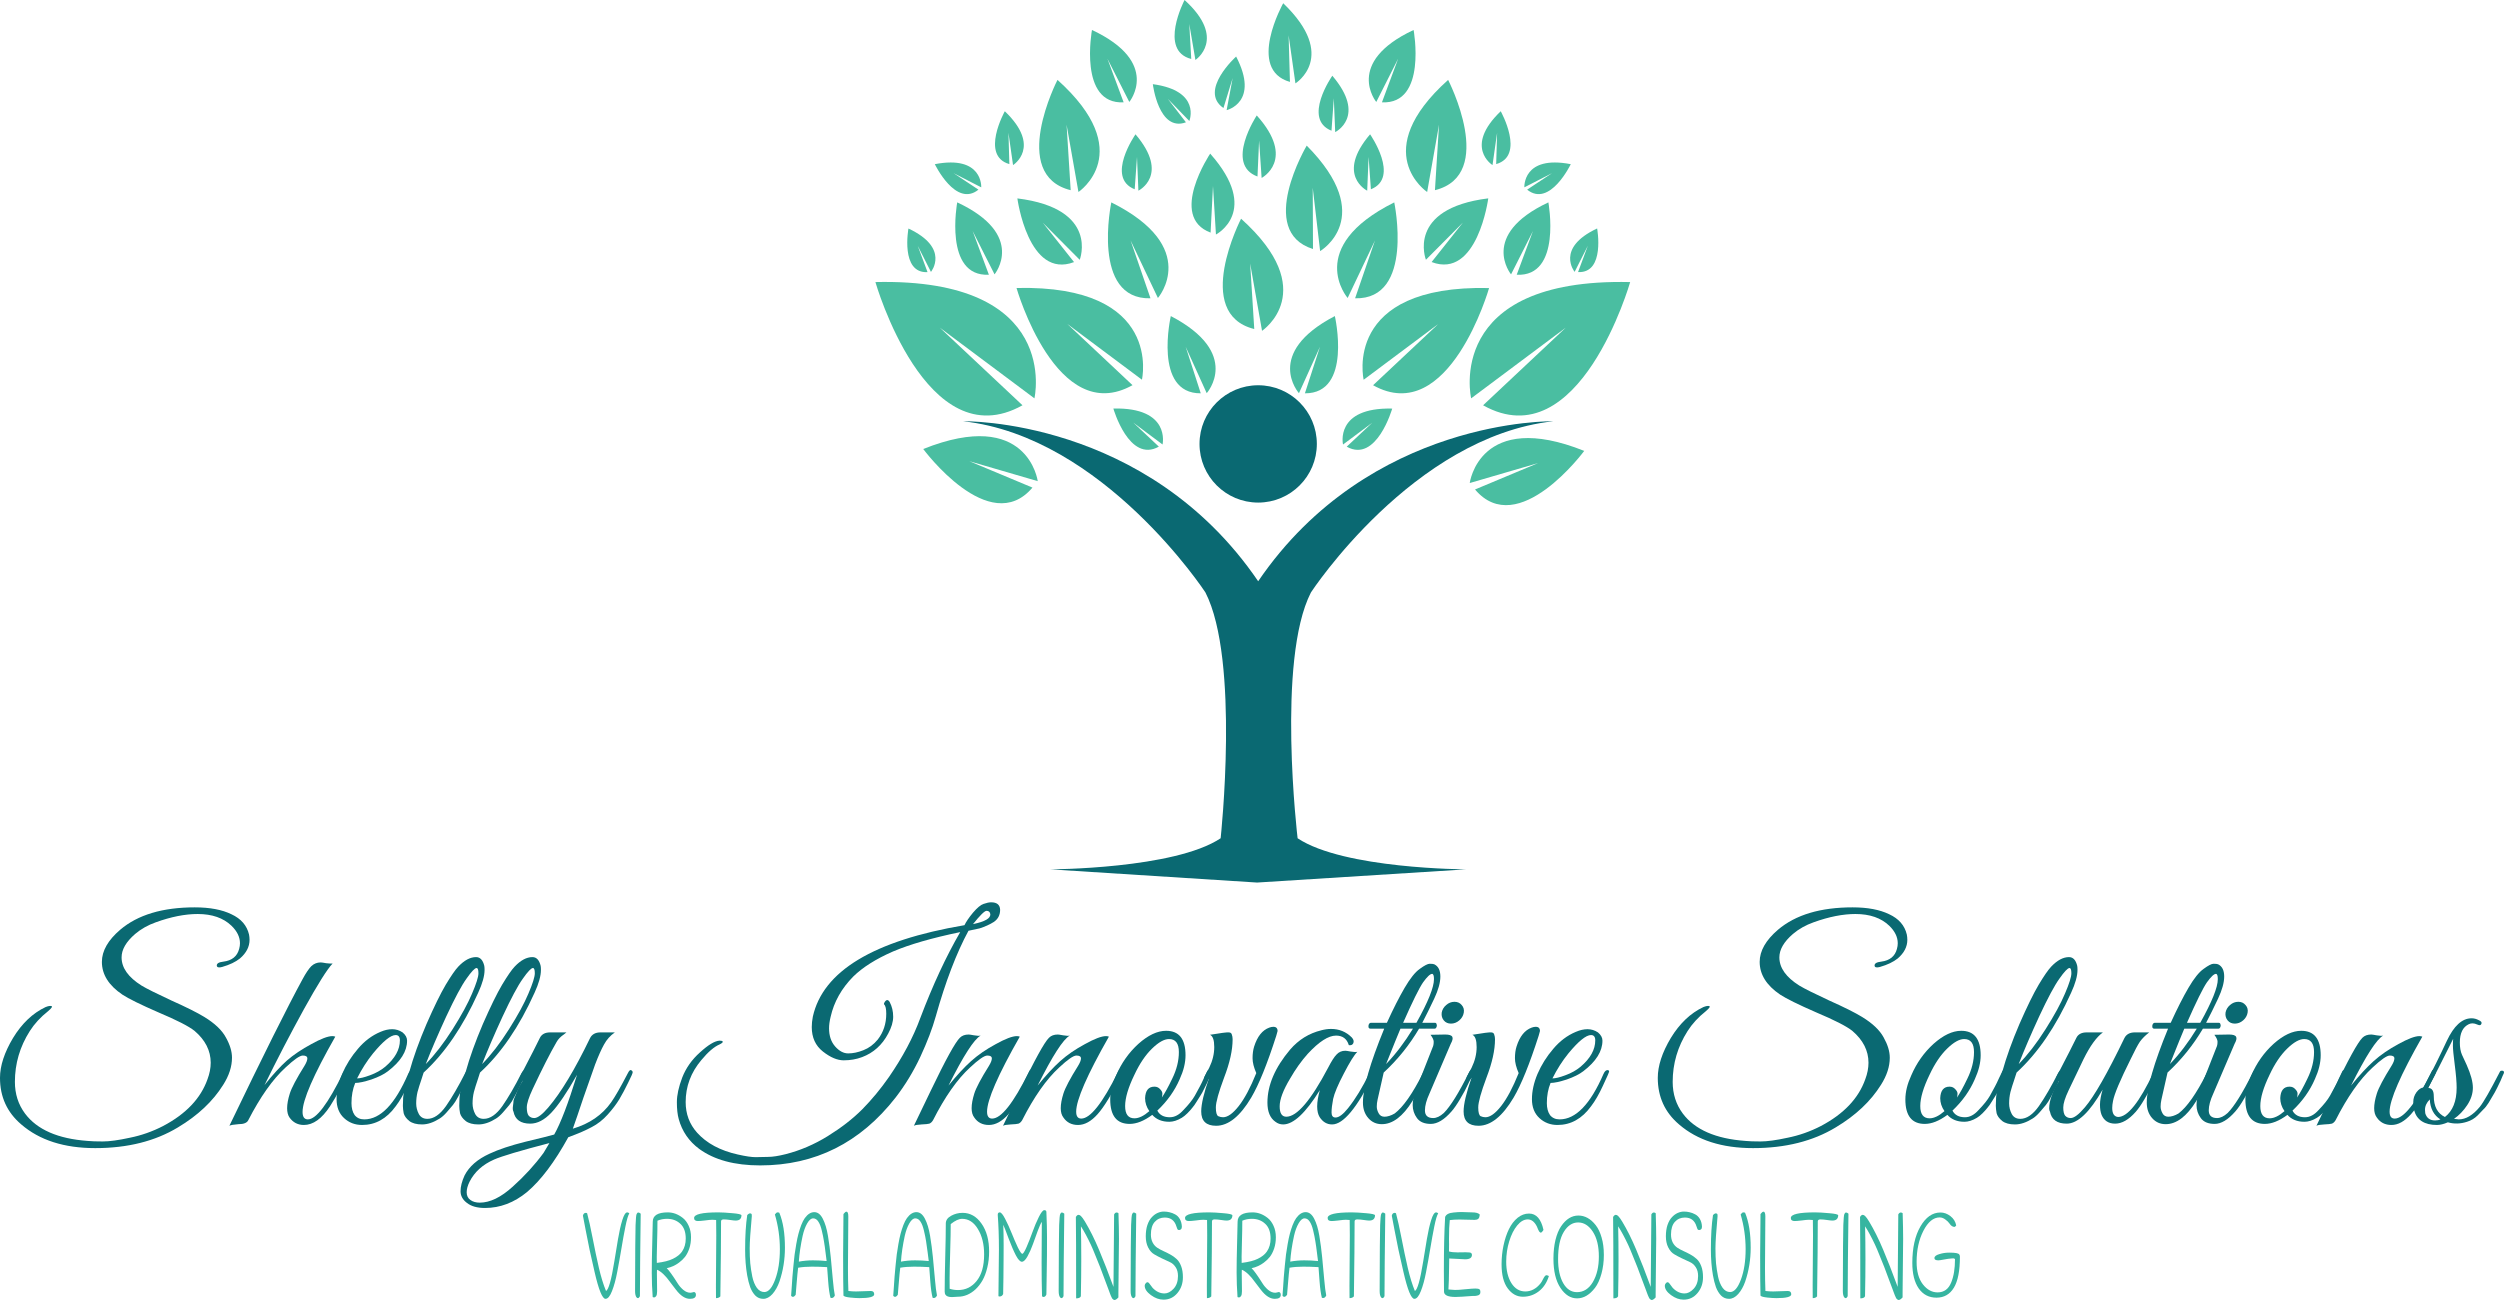 Technology Management Image: Shelly Innovative Solutions